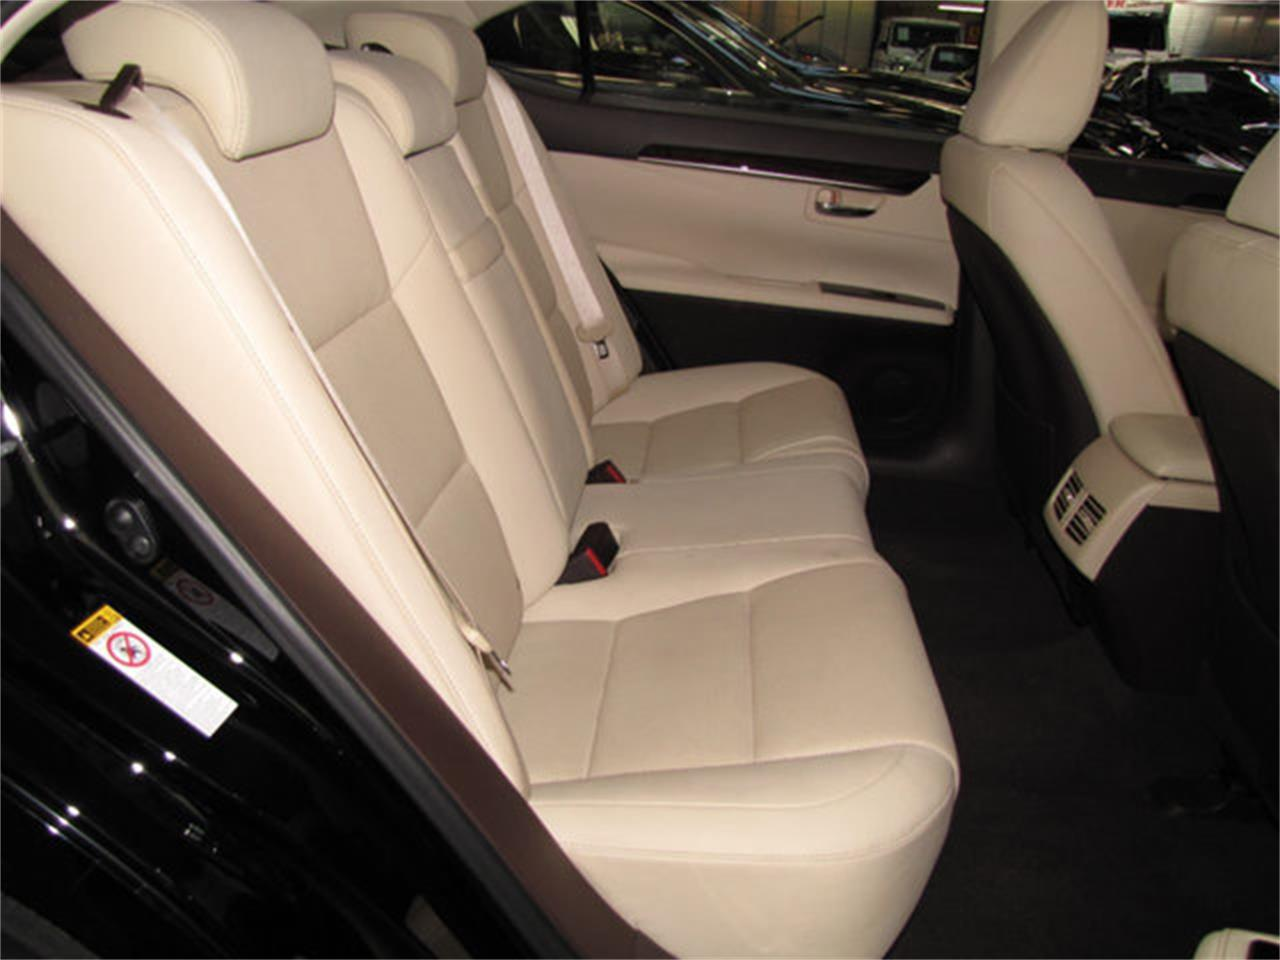 Stupendous 2016 Lexus Es300 For Sale In Hollywood Ca Classiccarsbay Com Gmtry Best Dining Table And Chair Ideas Images Gmtryco